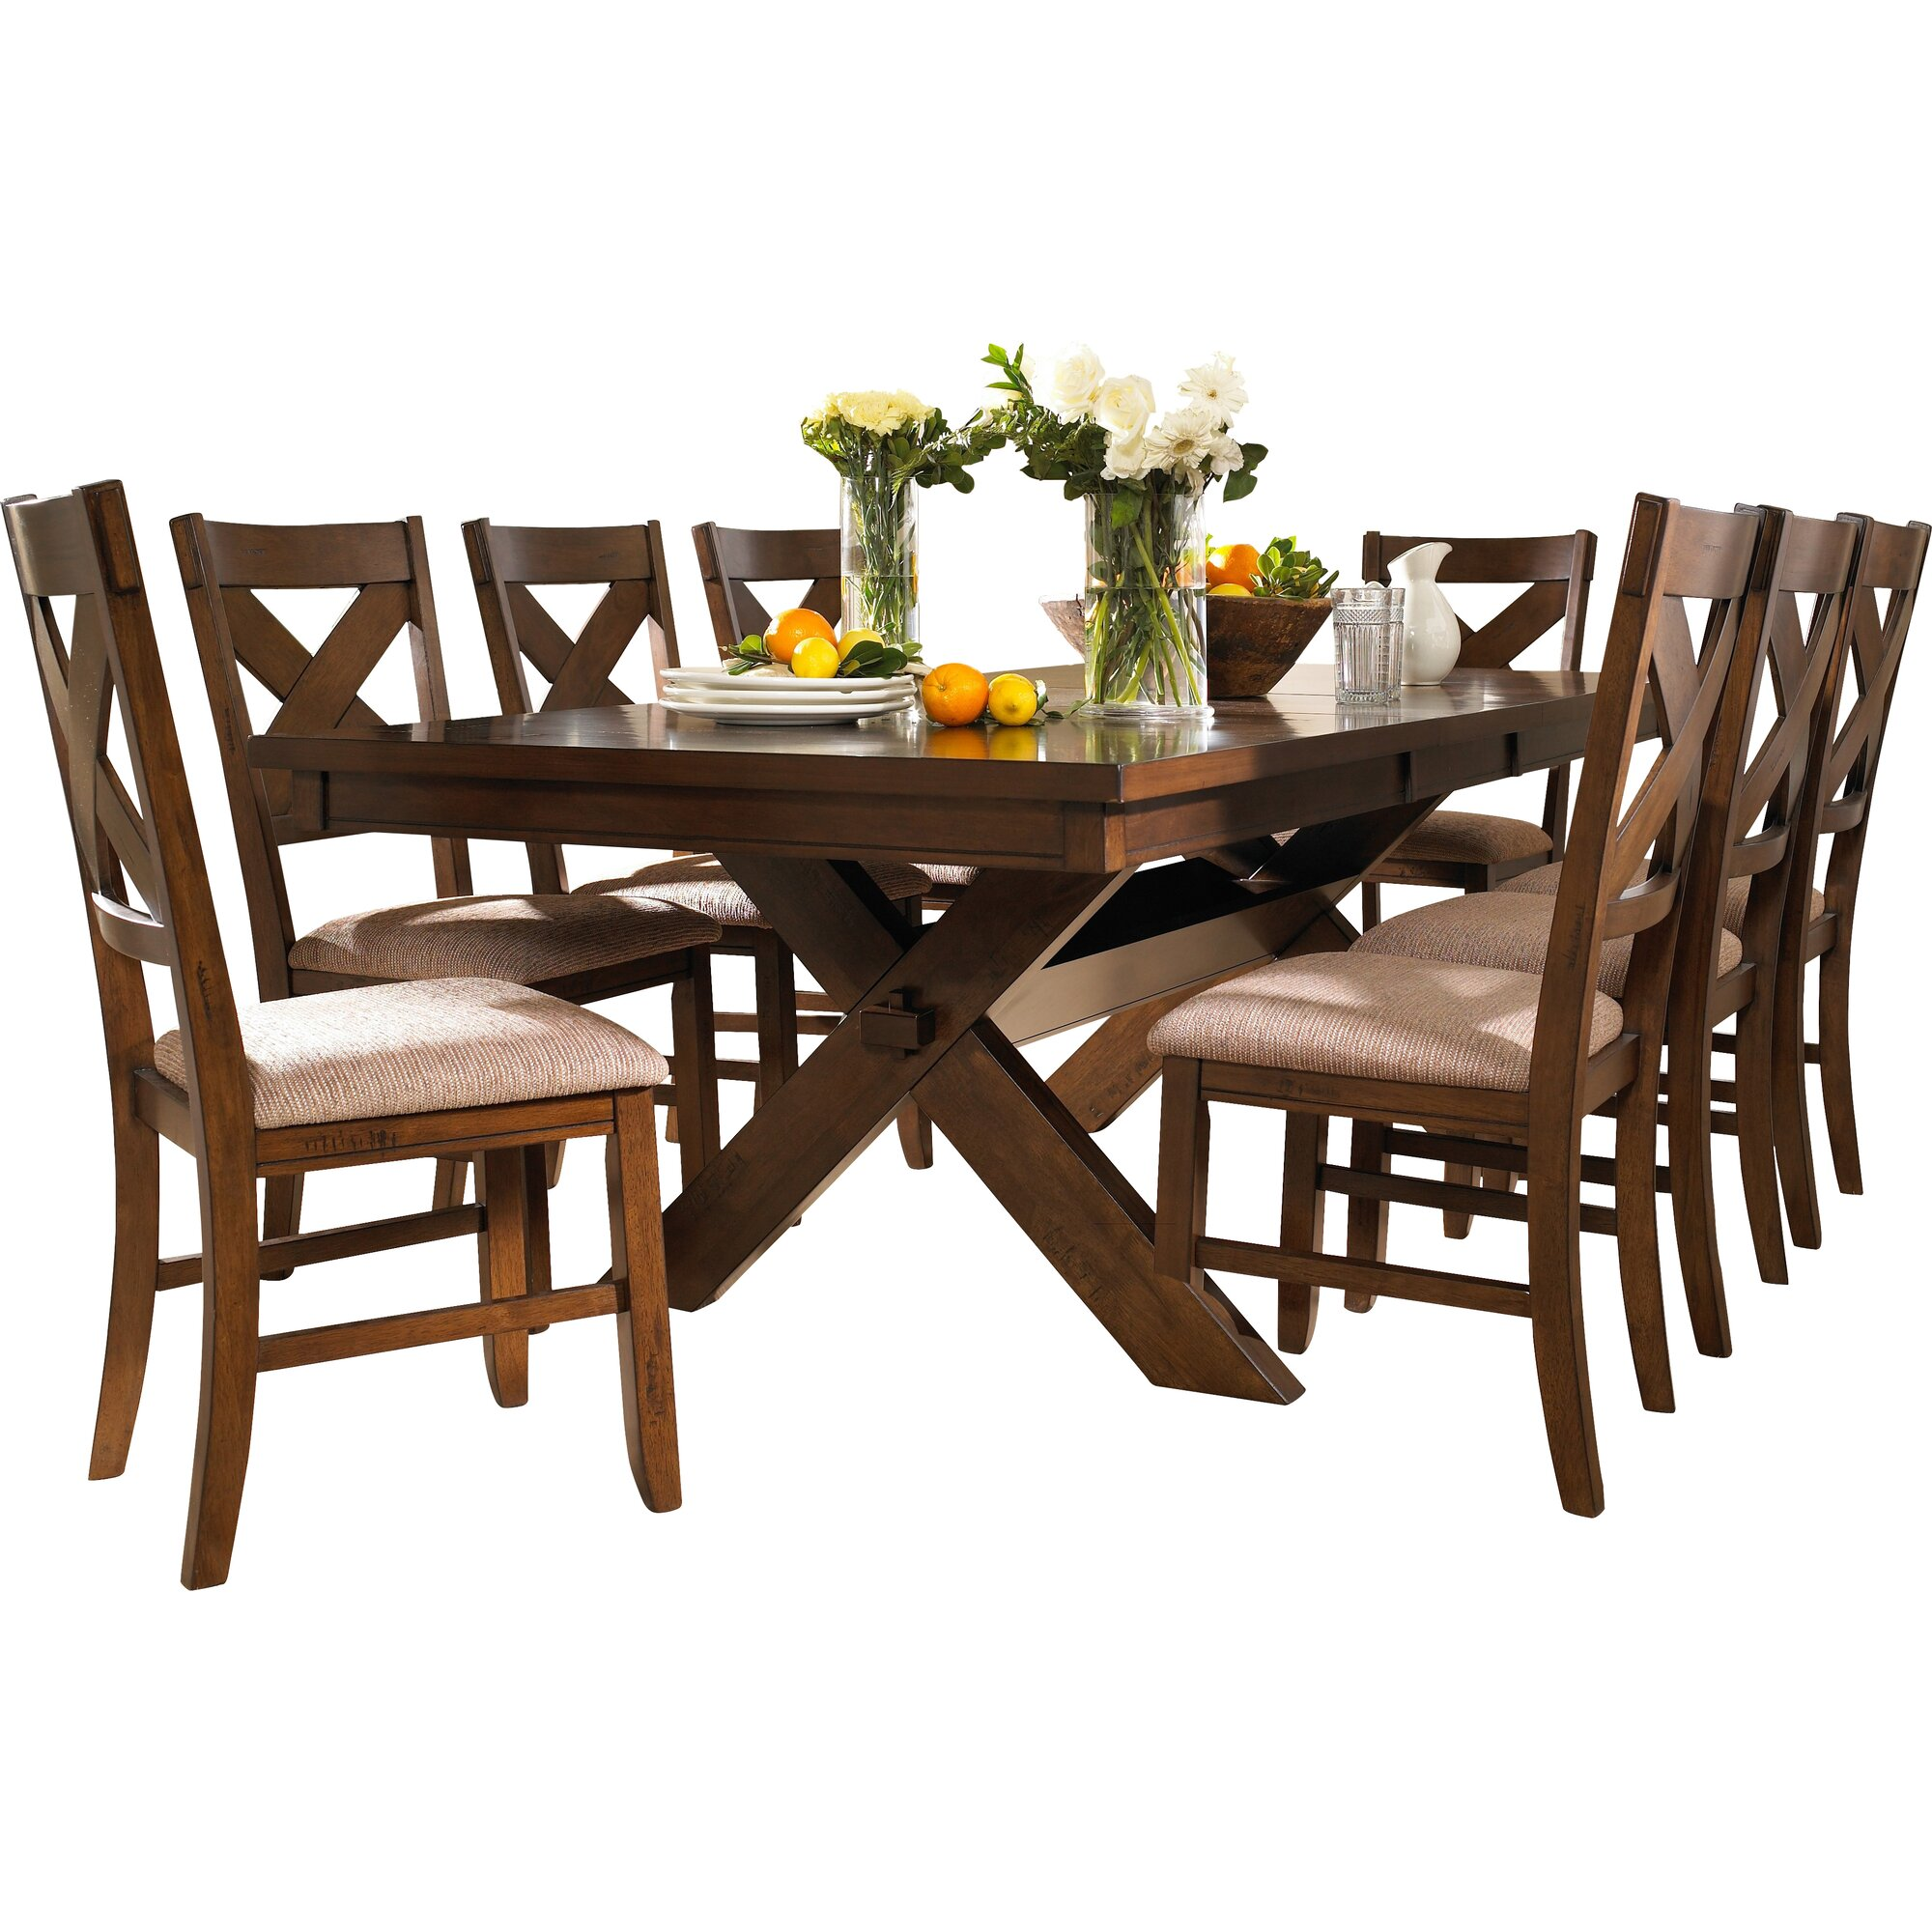 Dinning Set: Laurel Foundry Modern Farmhouse Isabell 9 Piece Dining Set